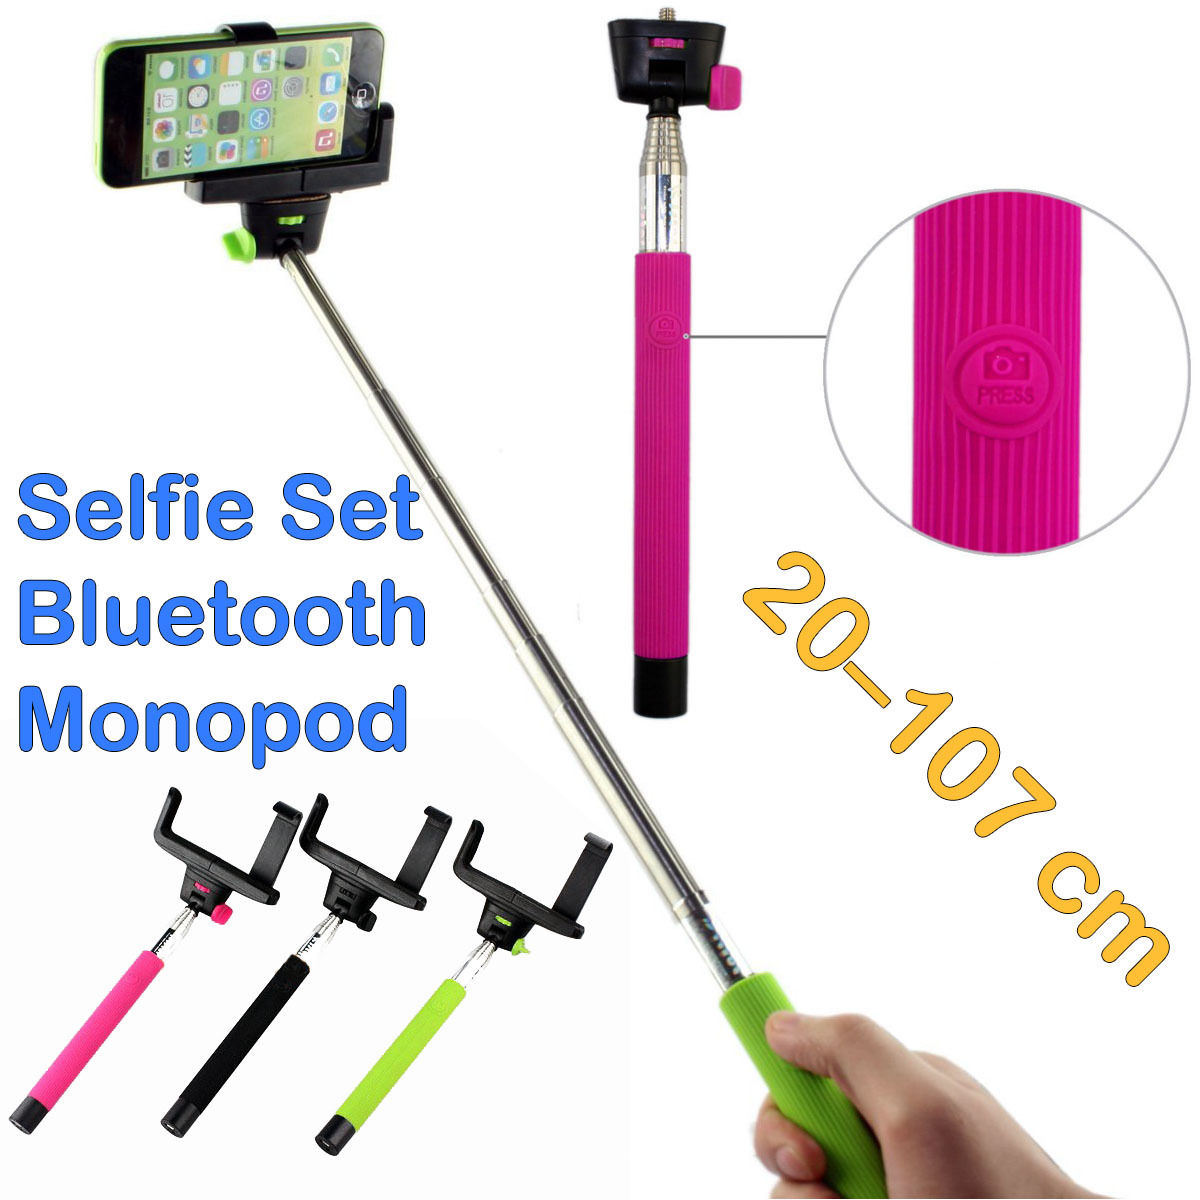 nouveau common selfie set bluetooth wireless monopod pour l 39 iphone samsung nouveau common. Black Bedroom Furniture Sets. Home Design Ideas